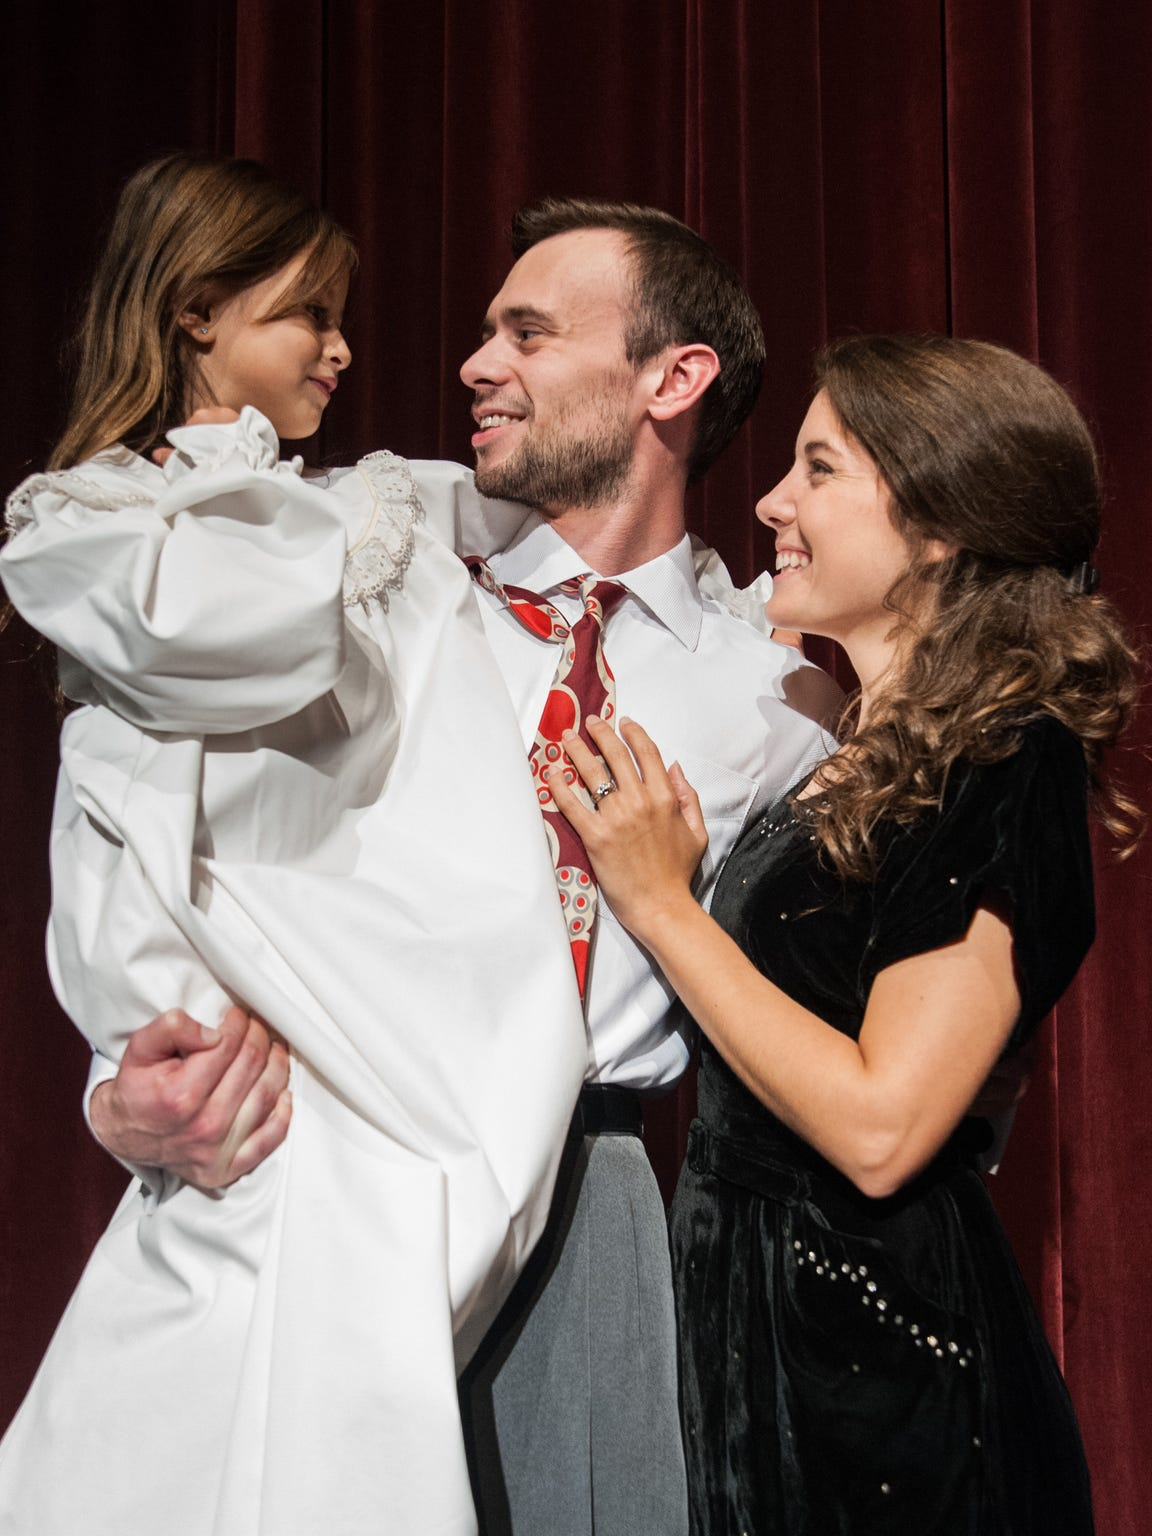 Appearing in 'It's a Wonderful Life' at Springhouse Theatre are, from left, Maggie Meek as Zuzu, Brett Cantrell as George and Corinne Bupp as Mary.